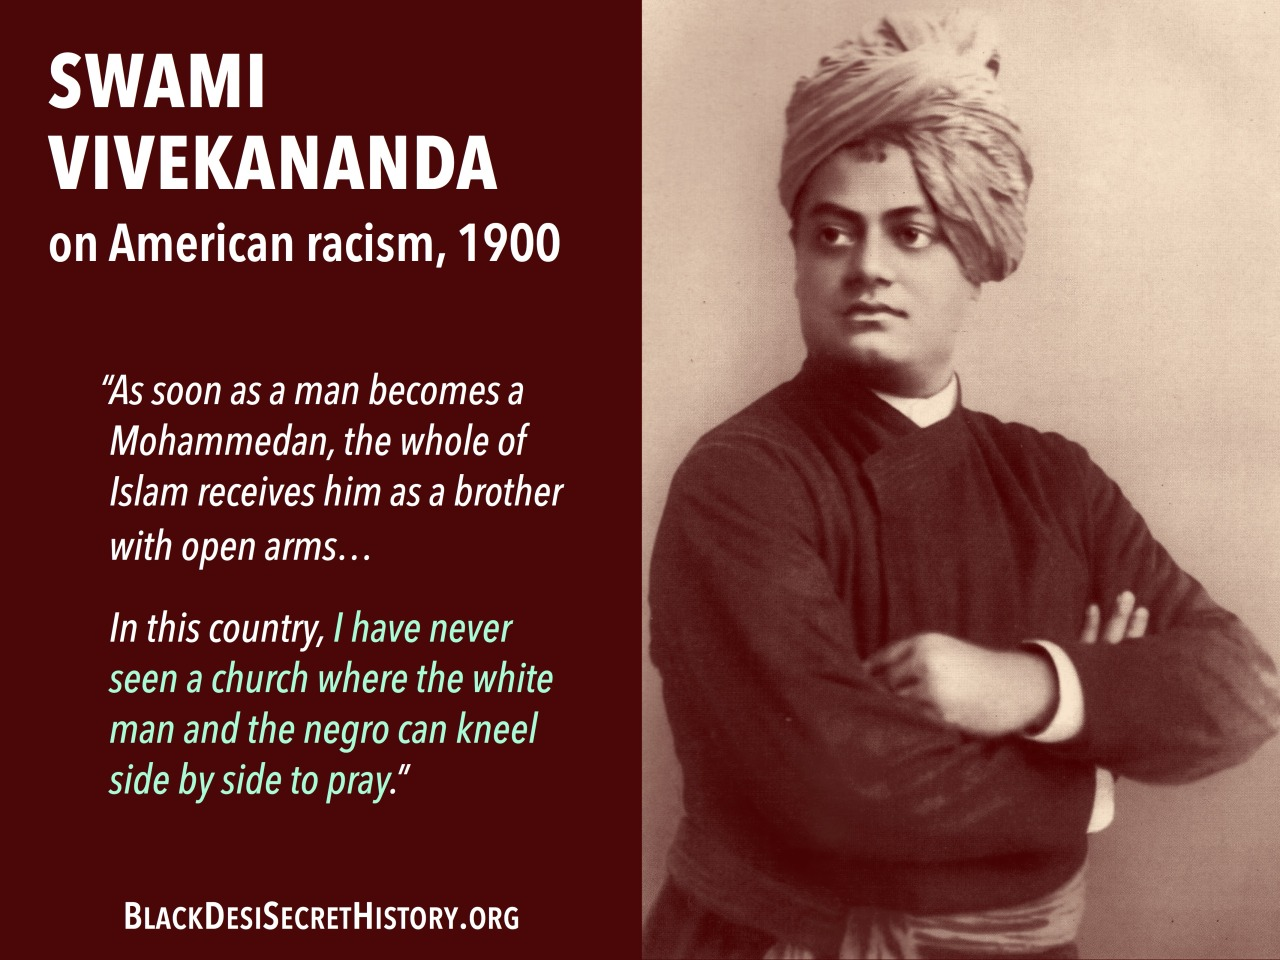 Swami Vivekananda's travel to the United States is central to the story of the global Indian